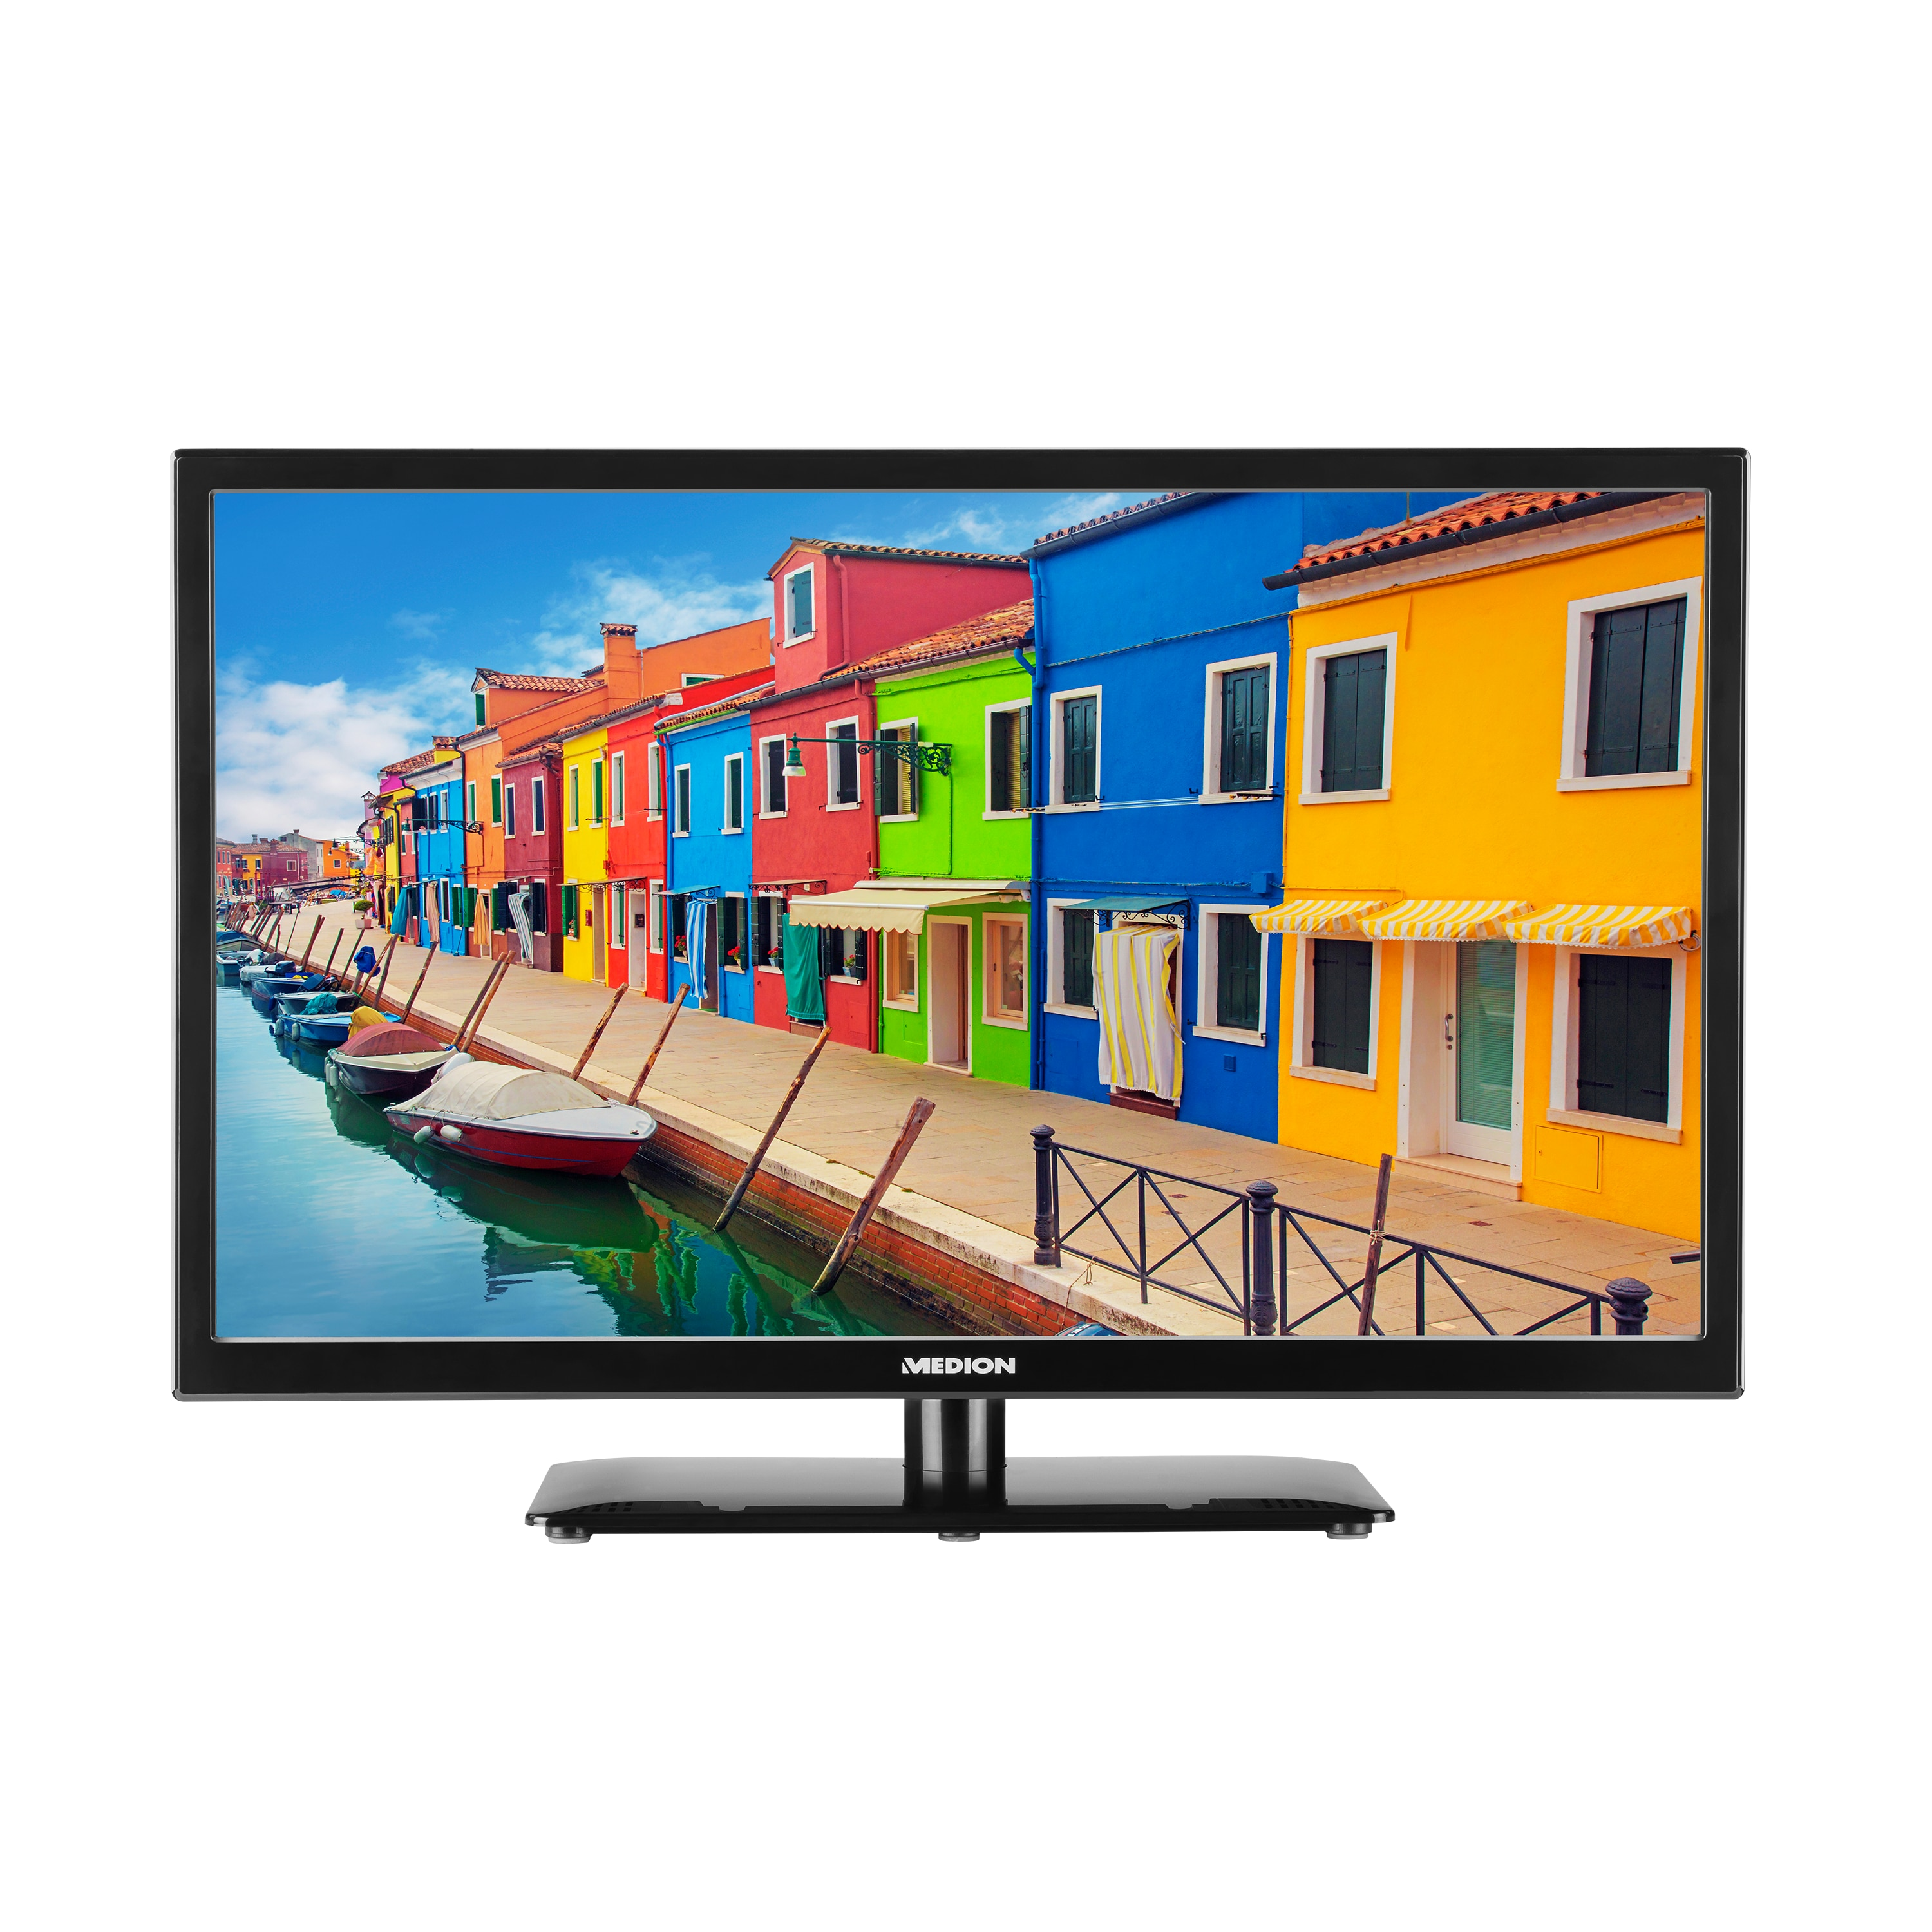 MEDION® LIFE® P12452 Fernseher, 59,9 cm (23,6) LED-Backlight-TV, Full HD, integrierter DVD-Player, HD Triple Tuner, DVB-T2 HD Antenne, Car-Adapter